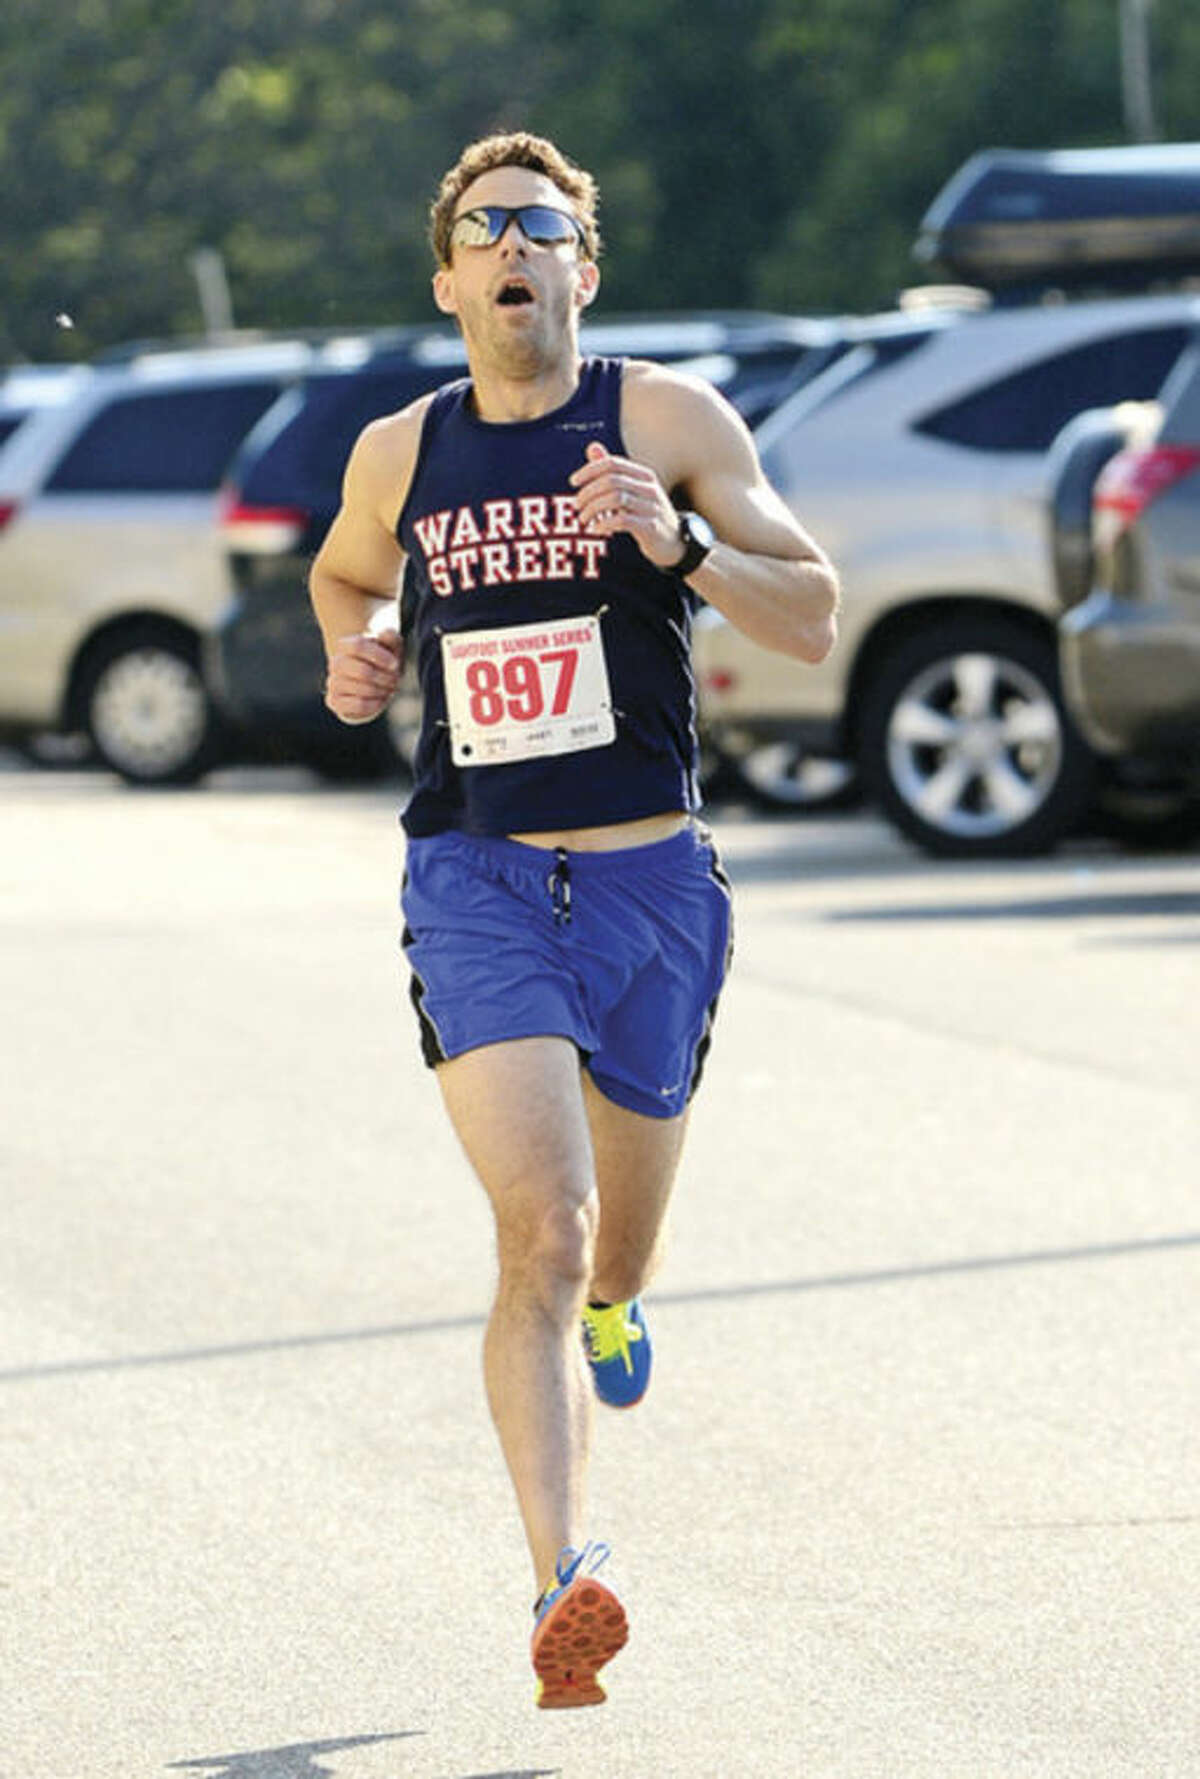 New Cannan Resident Larry Ikard finishes first for the men during Lightfoot's opening race of the Norwalk Running Series, a 3-mile race which begins and ends at Norwalk High School. Hour photo / Erik Trautmann